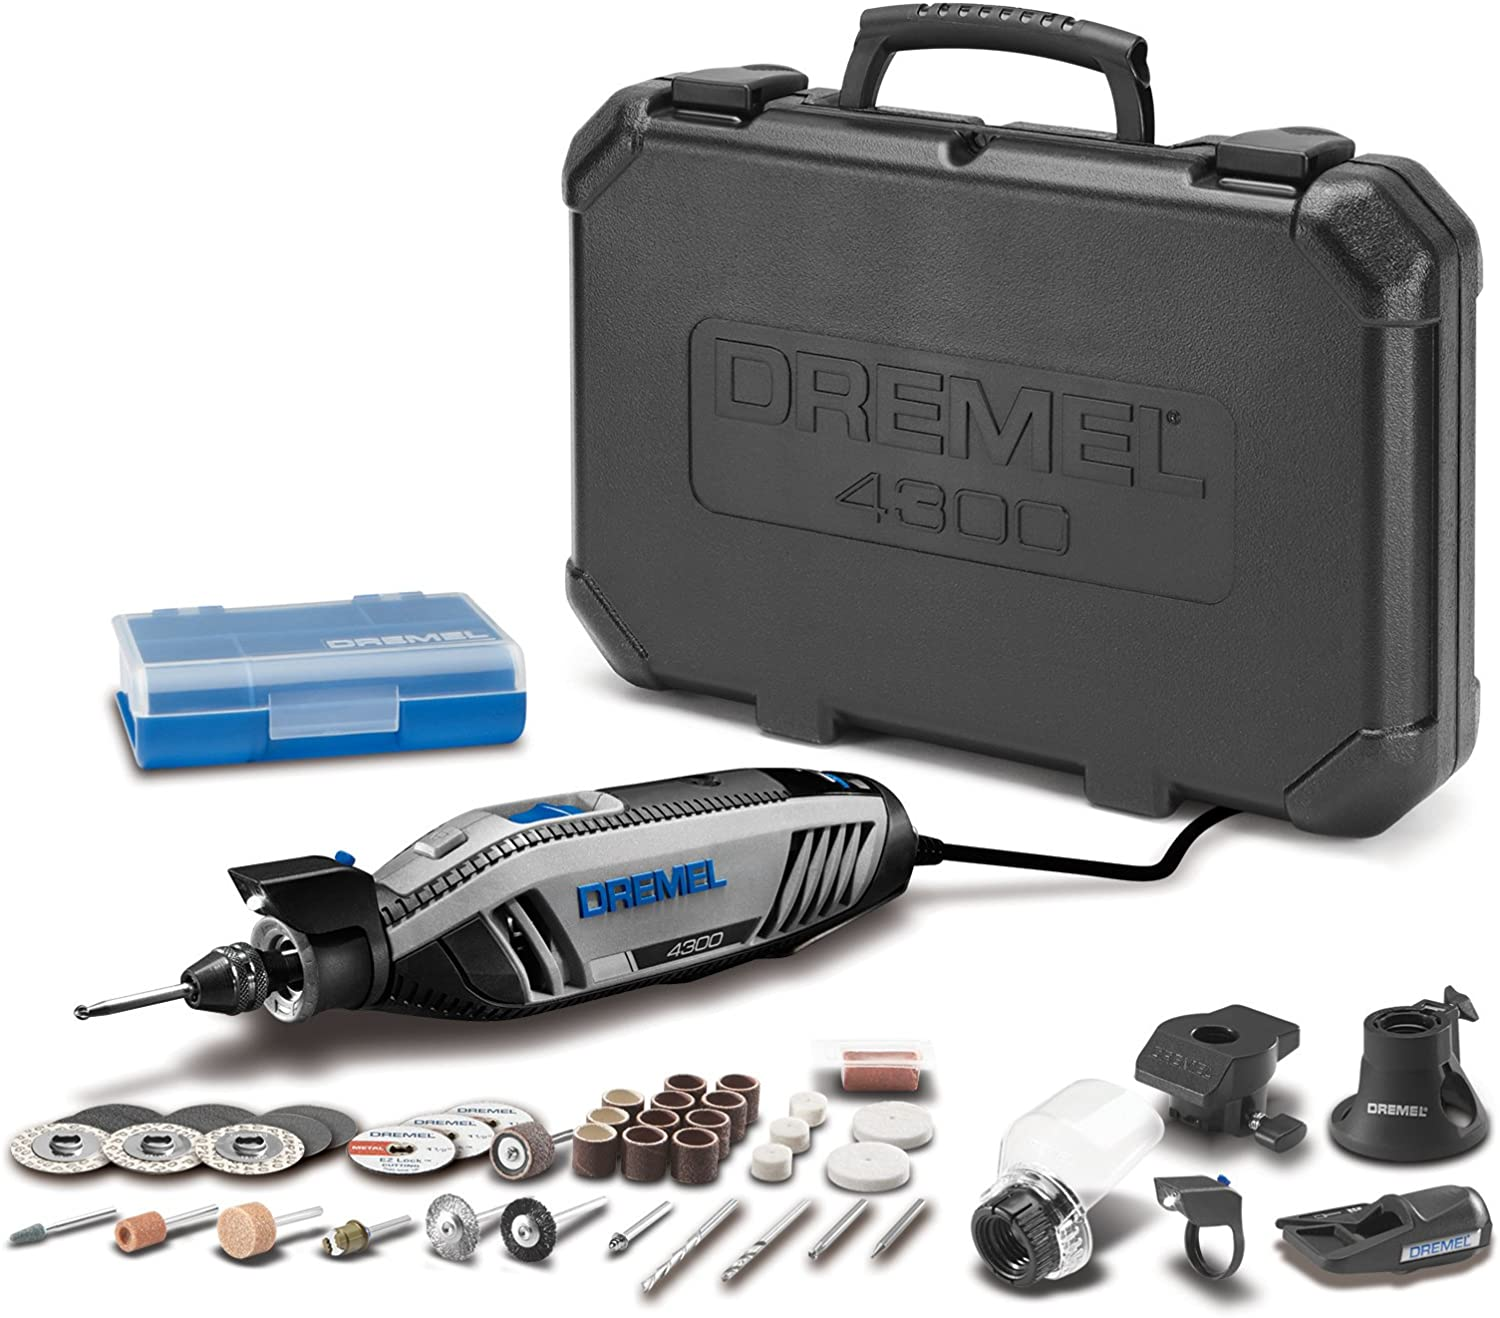 Dremel 4300-5 40 High-Performance Rotary Tool Kit